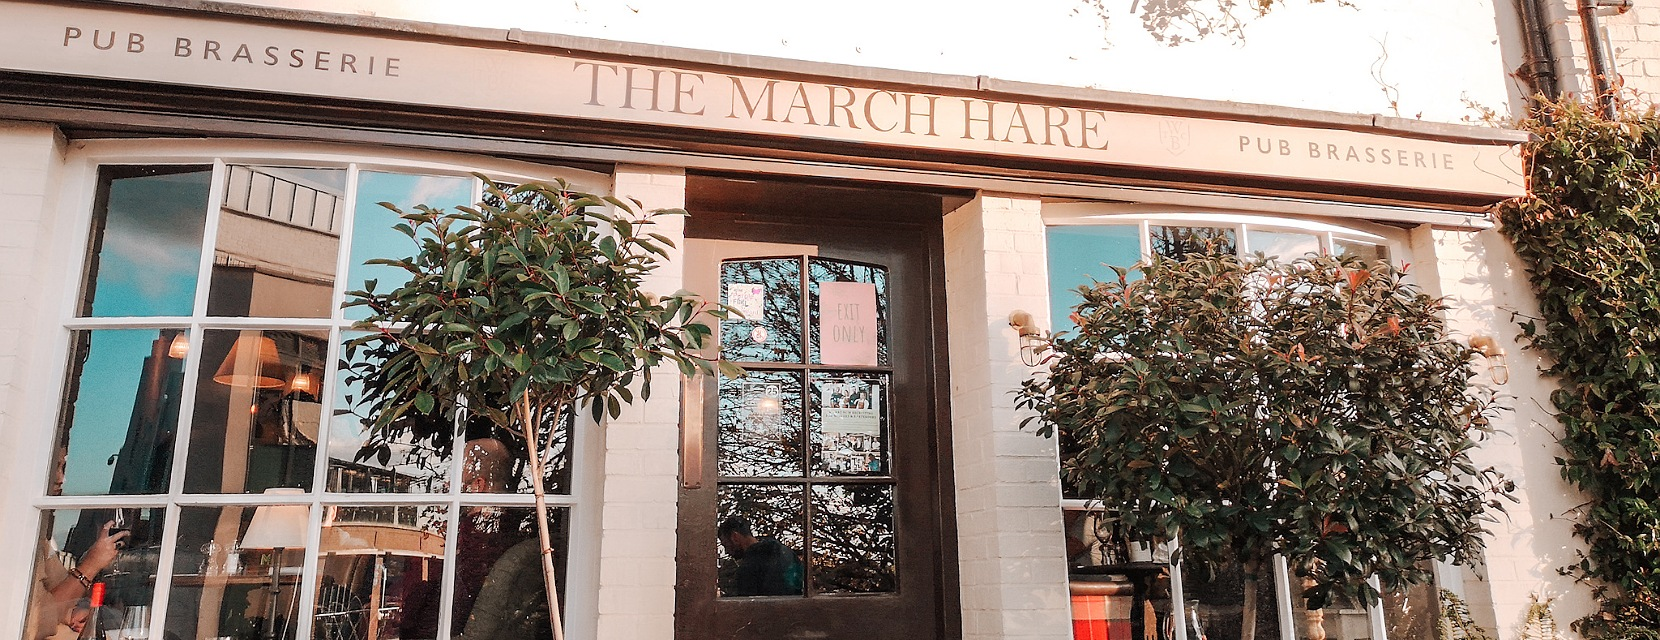 Sunday Lunch at The March Hare, Guildford 8